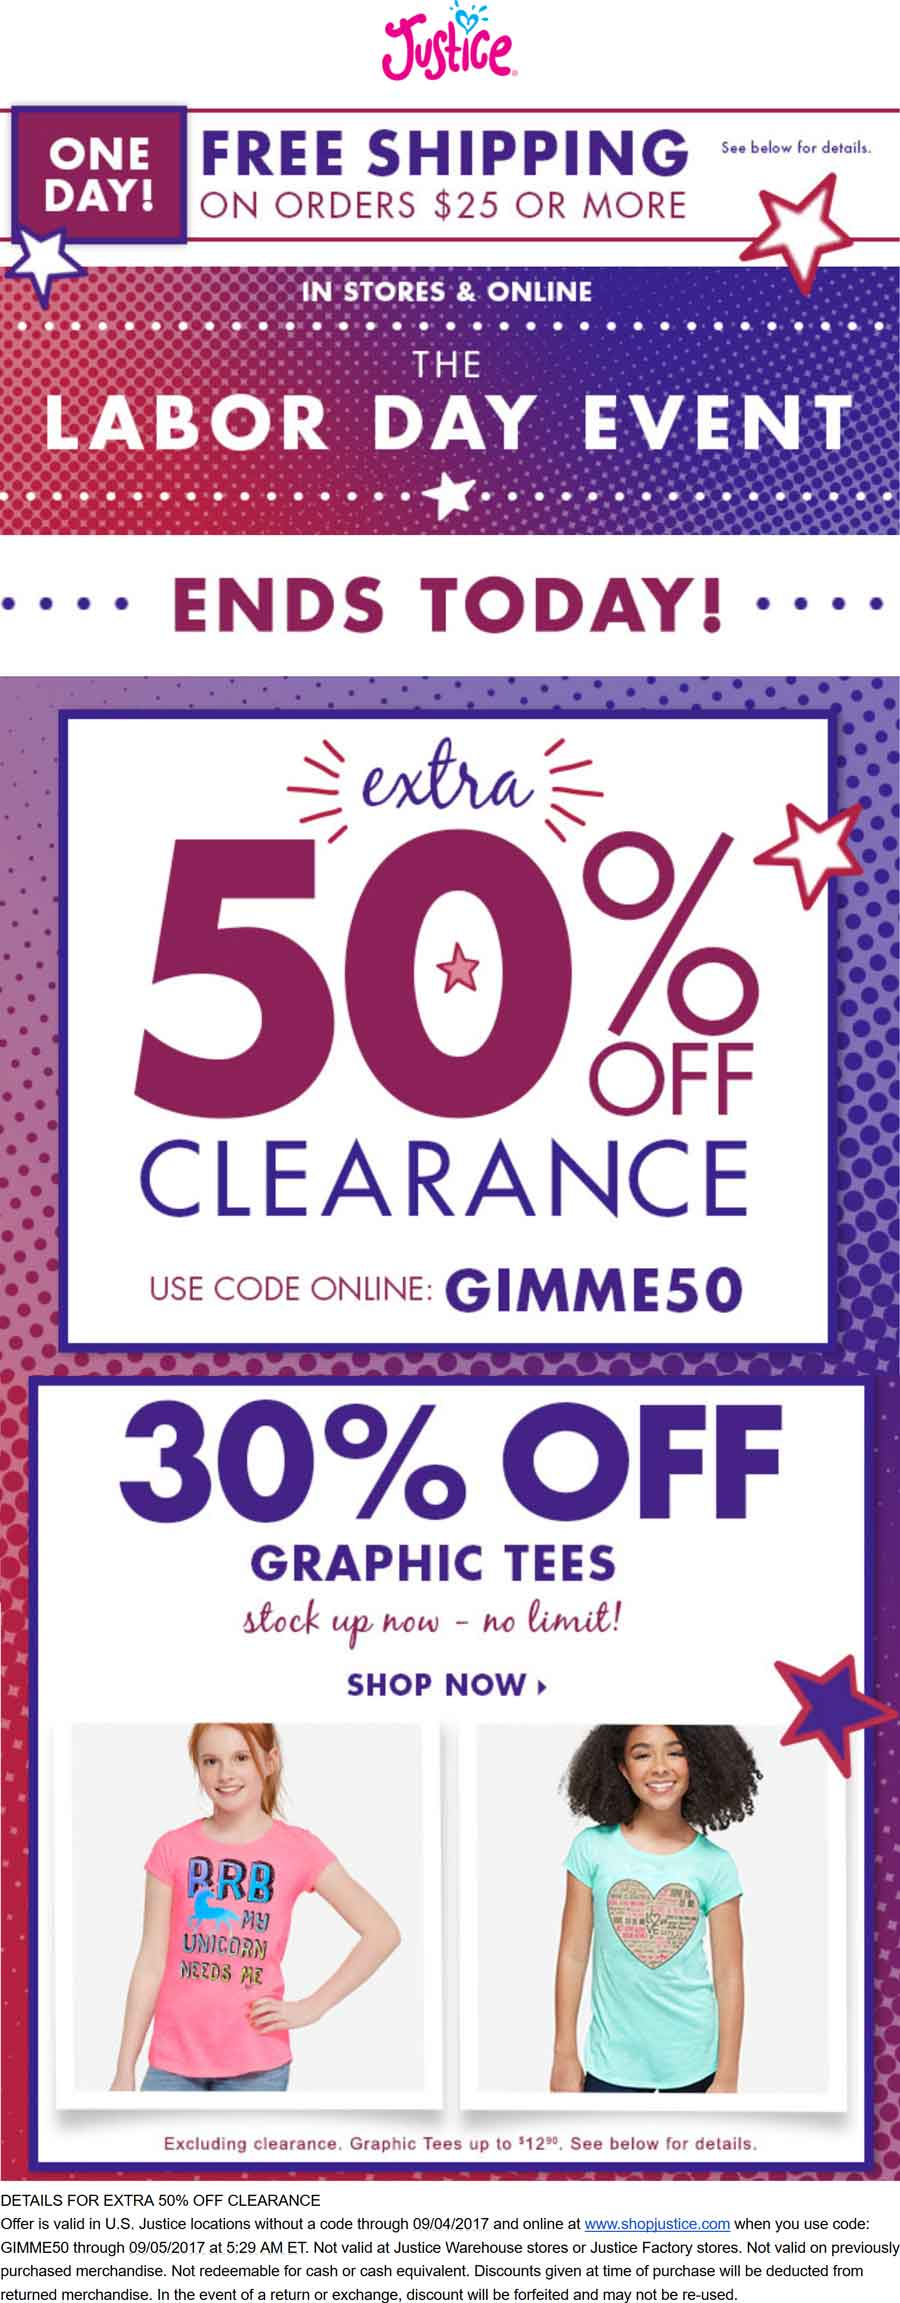 Justice Coupon January 2018 Extra 50% off clearance today at Justice, ditto online